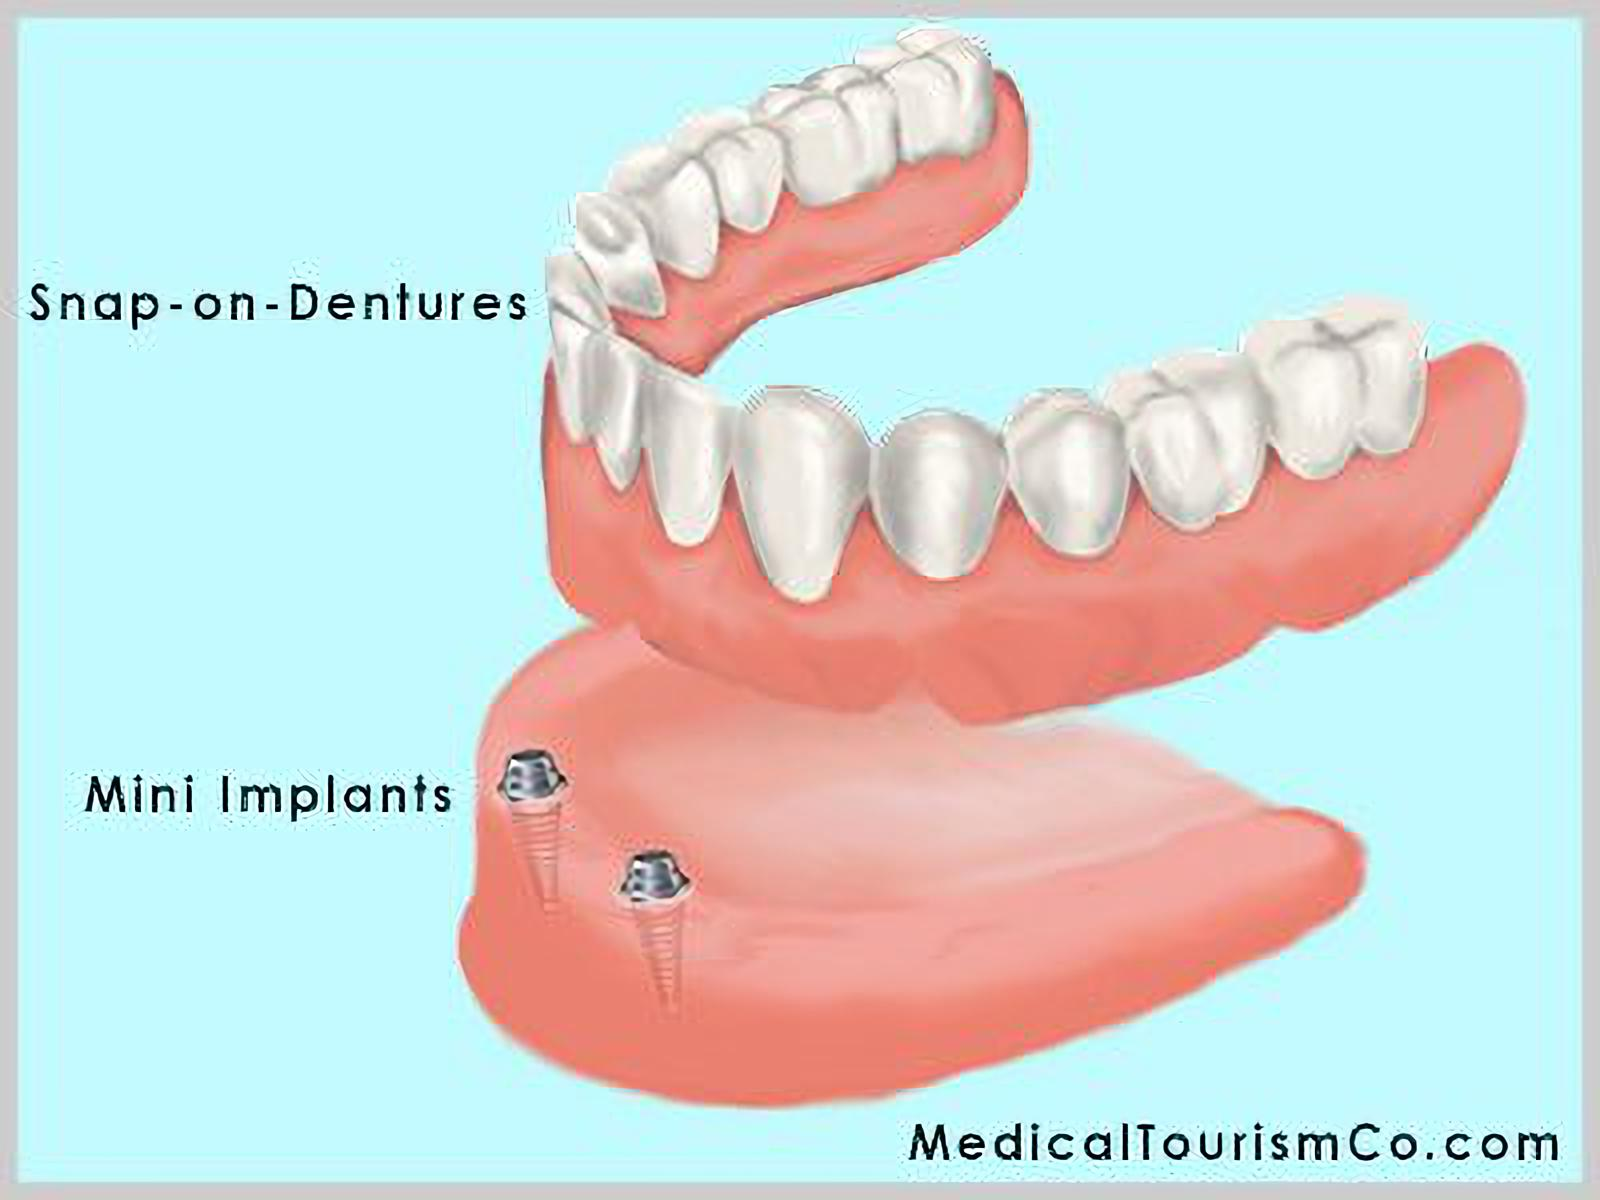 Snap-on Dentures in Colombia